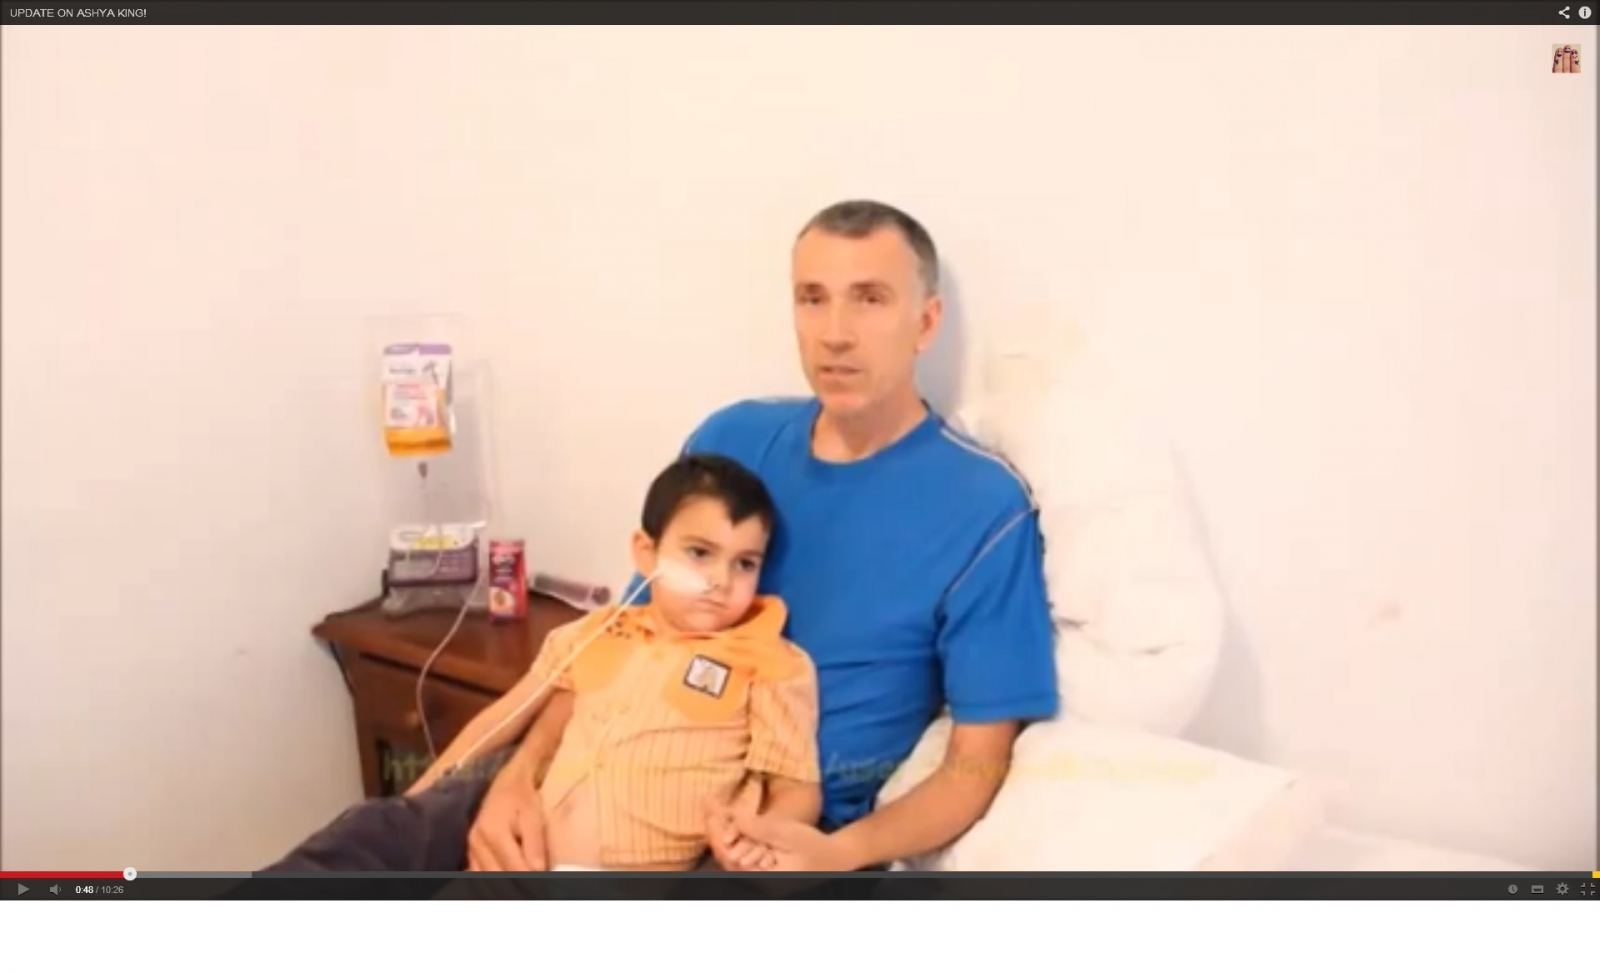 Ashya King's father explains why he took his son from hospital where he was receiving treatment for brain cancer. (YouTube)